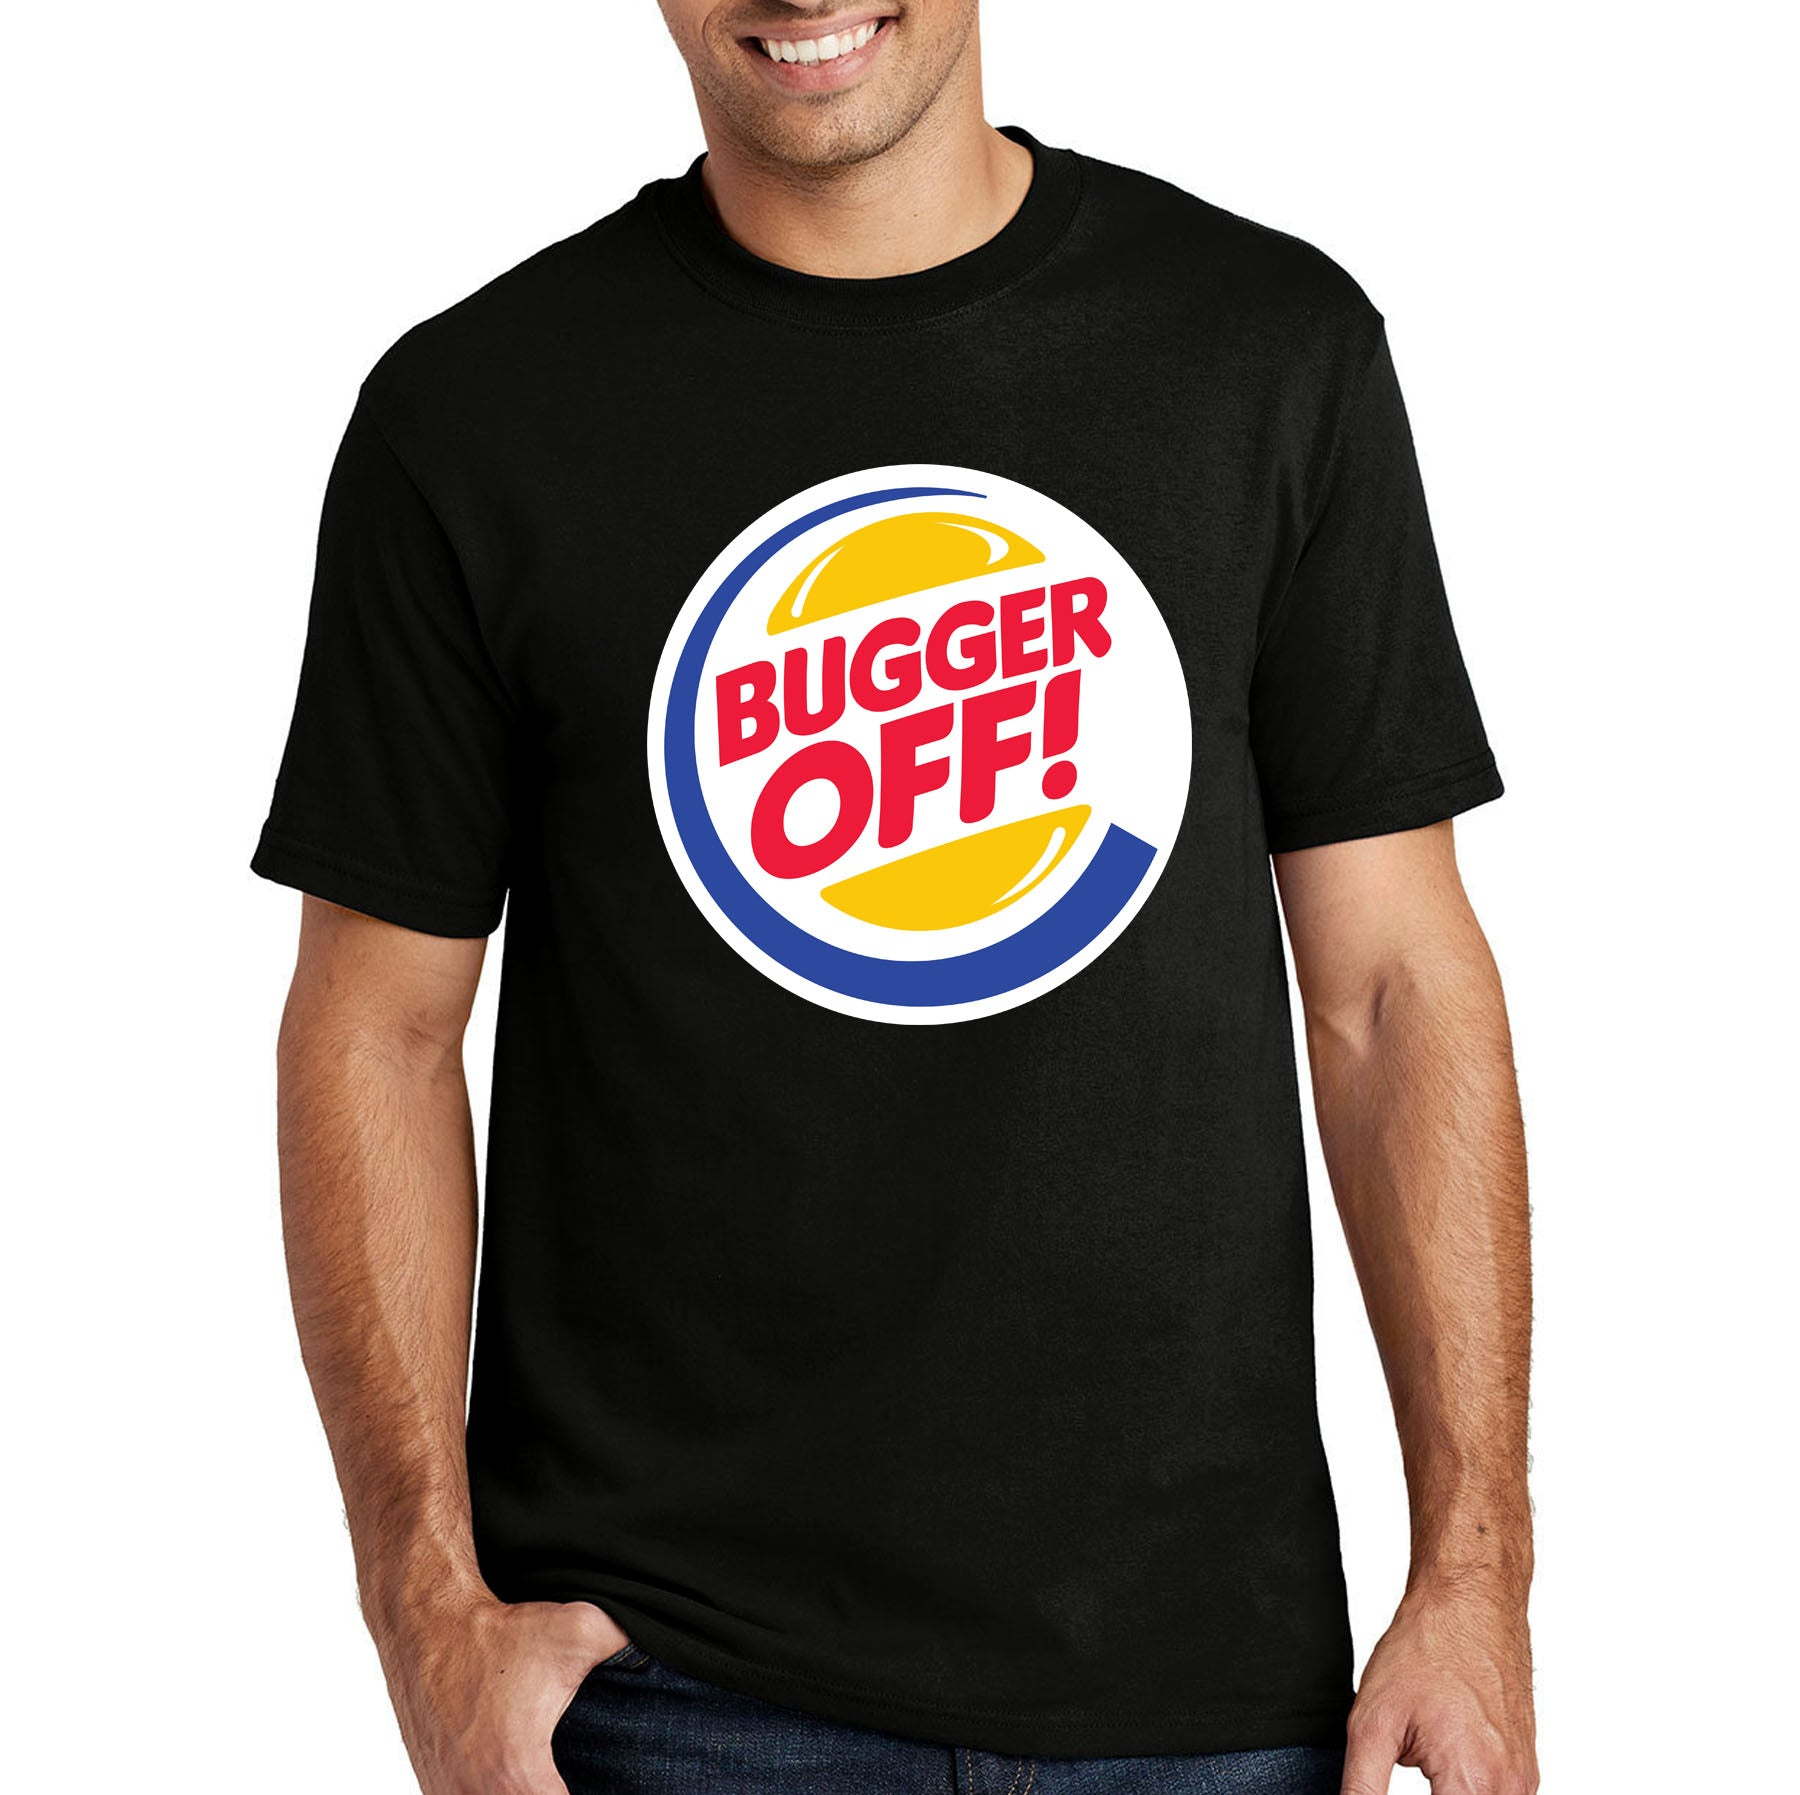 Bugger Off Funny T-shirt